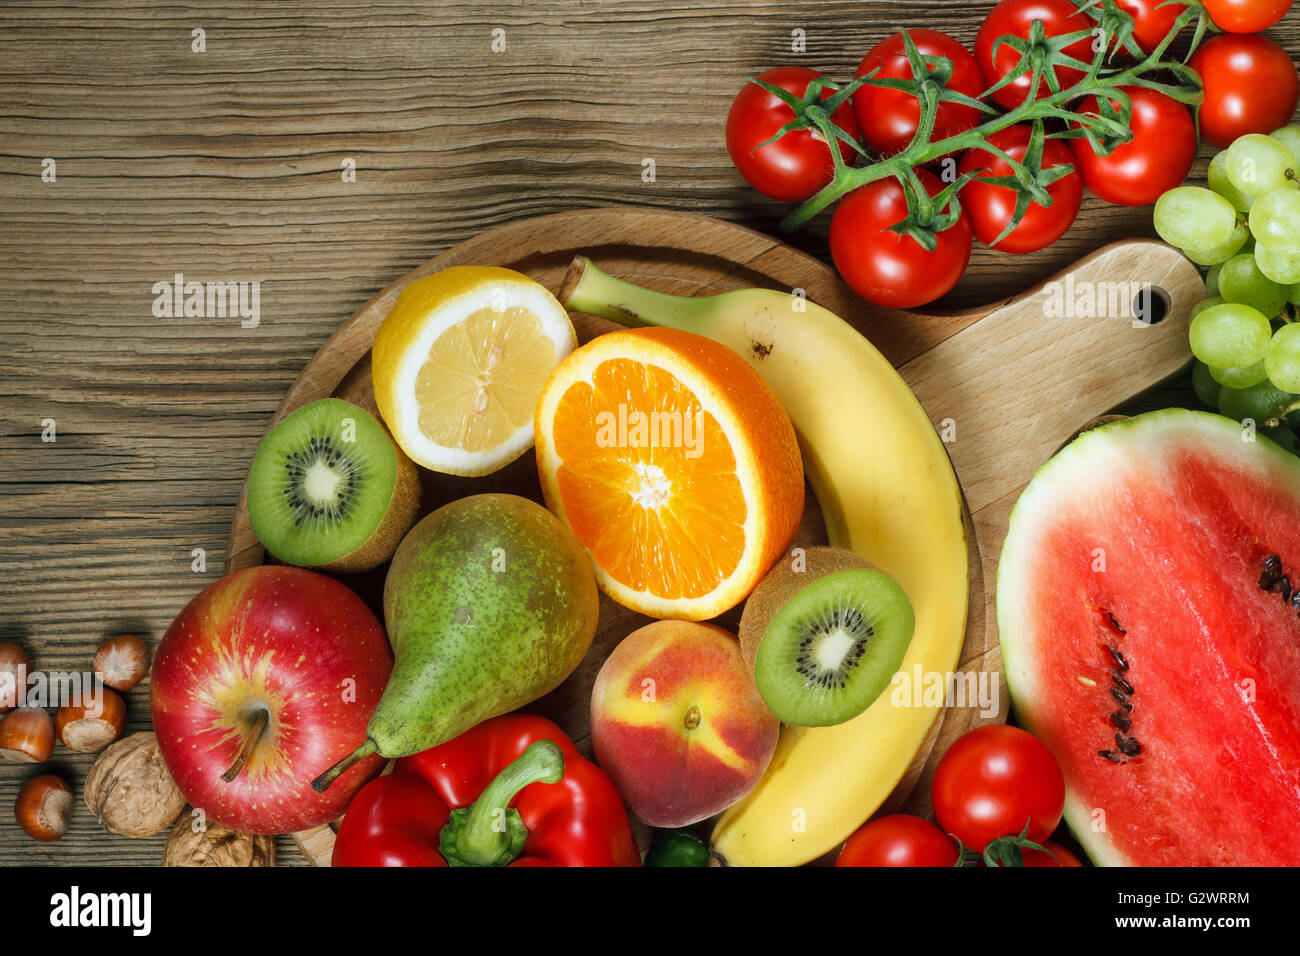 Vitamins in fruits and vegetables. Natural products rich in vitamins as oranges, lemons, red pepper, kiwi,tomatoes, - Stock Image